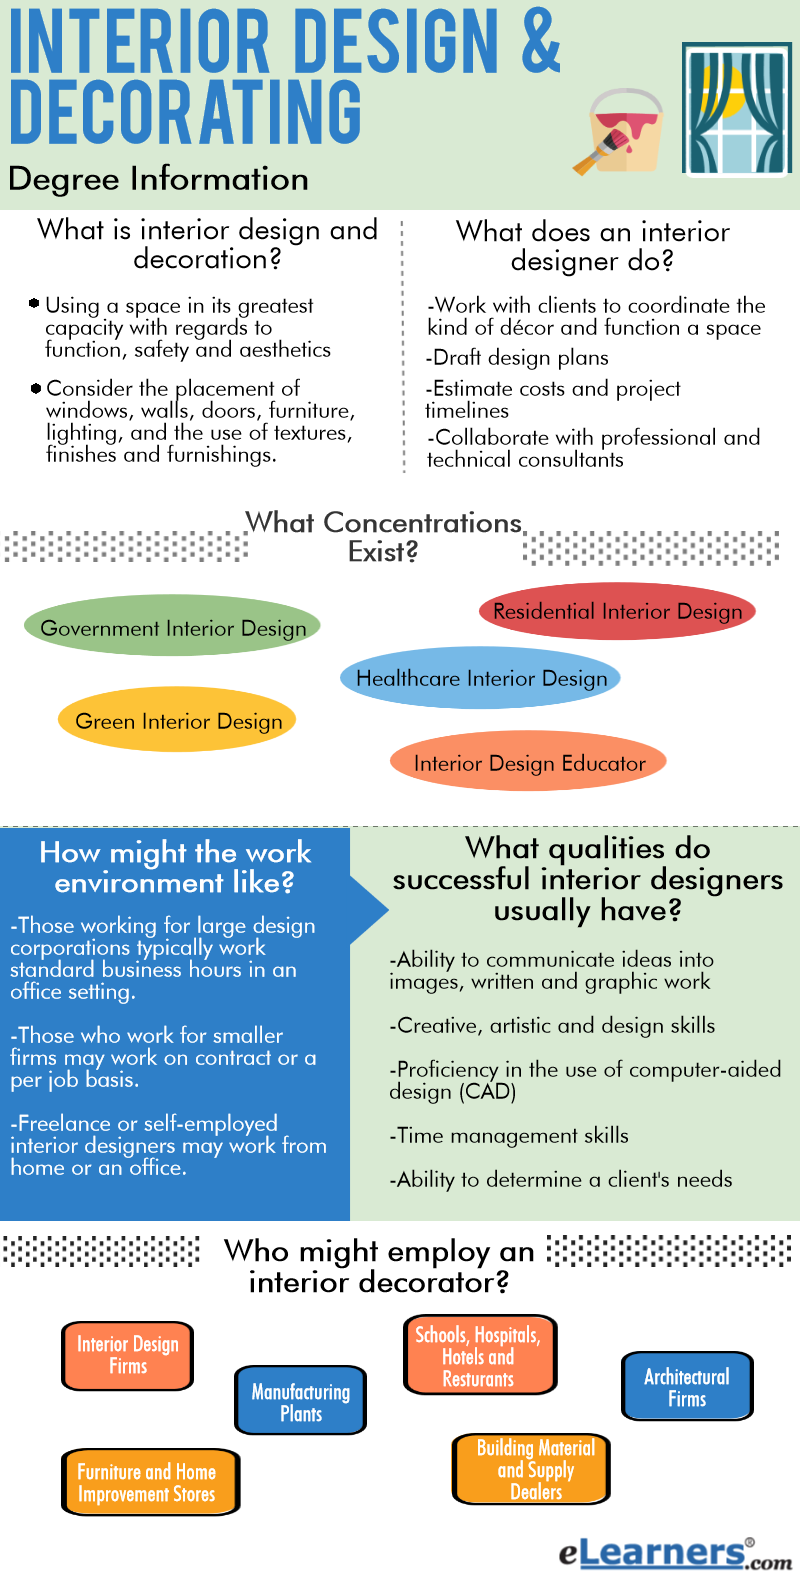 Online Interior Design Degree   Whatu0027s An Online Interior Design Degree All  About?